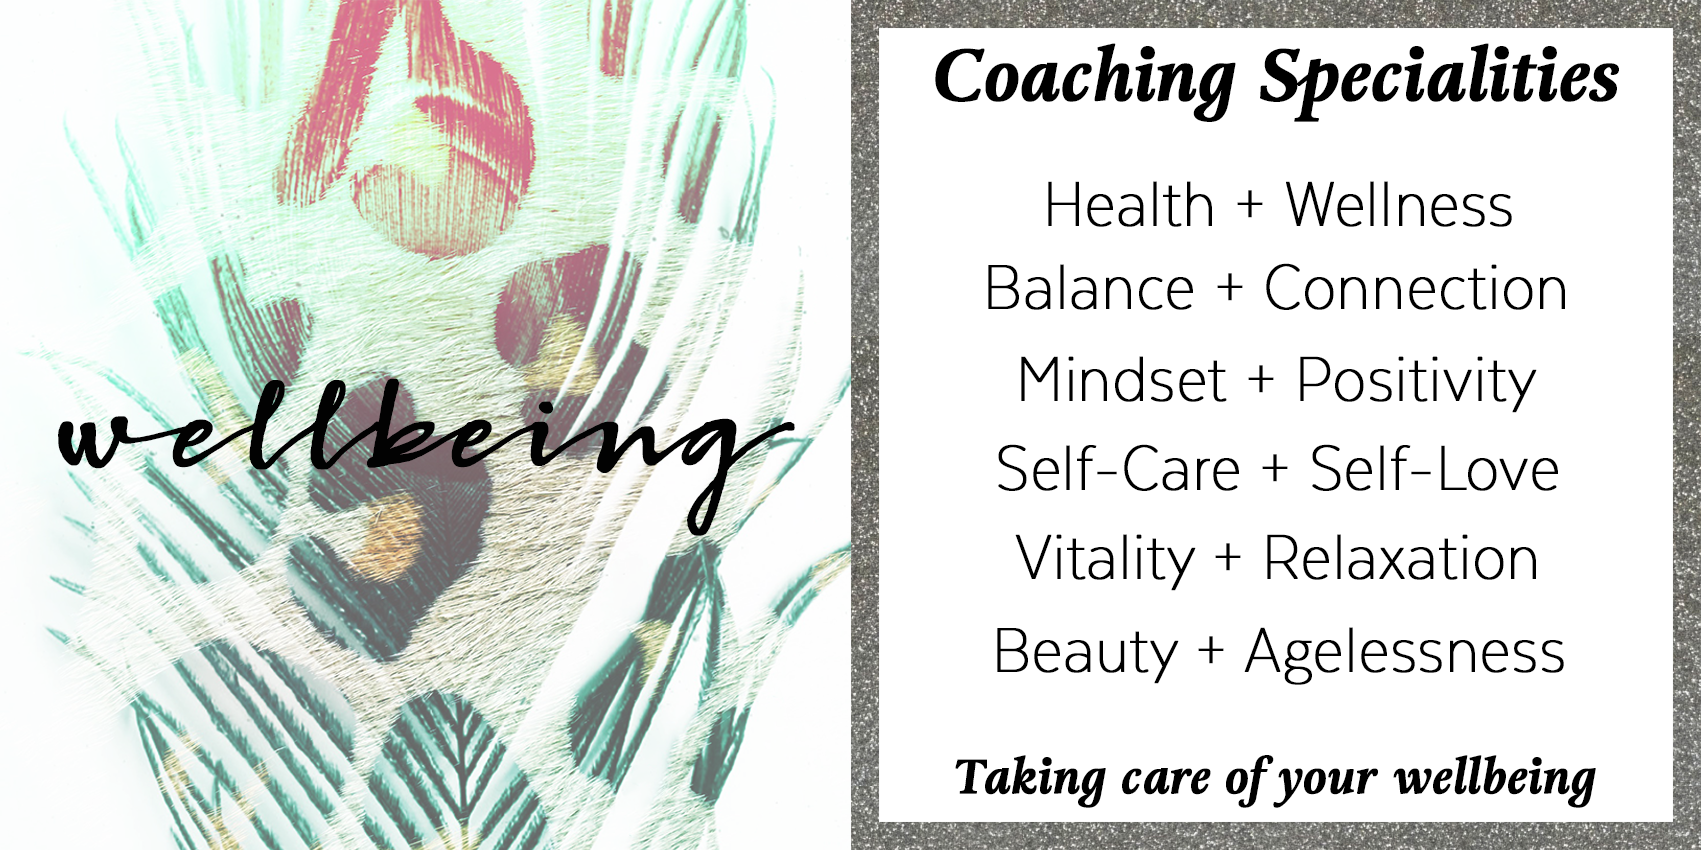 Wellbeing, Health, Vitality Coaching Specialties